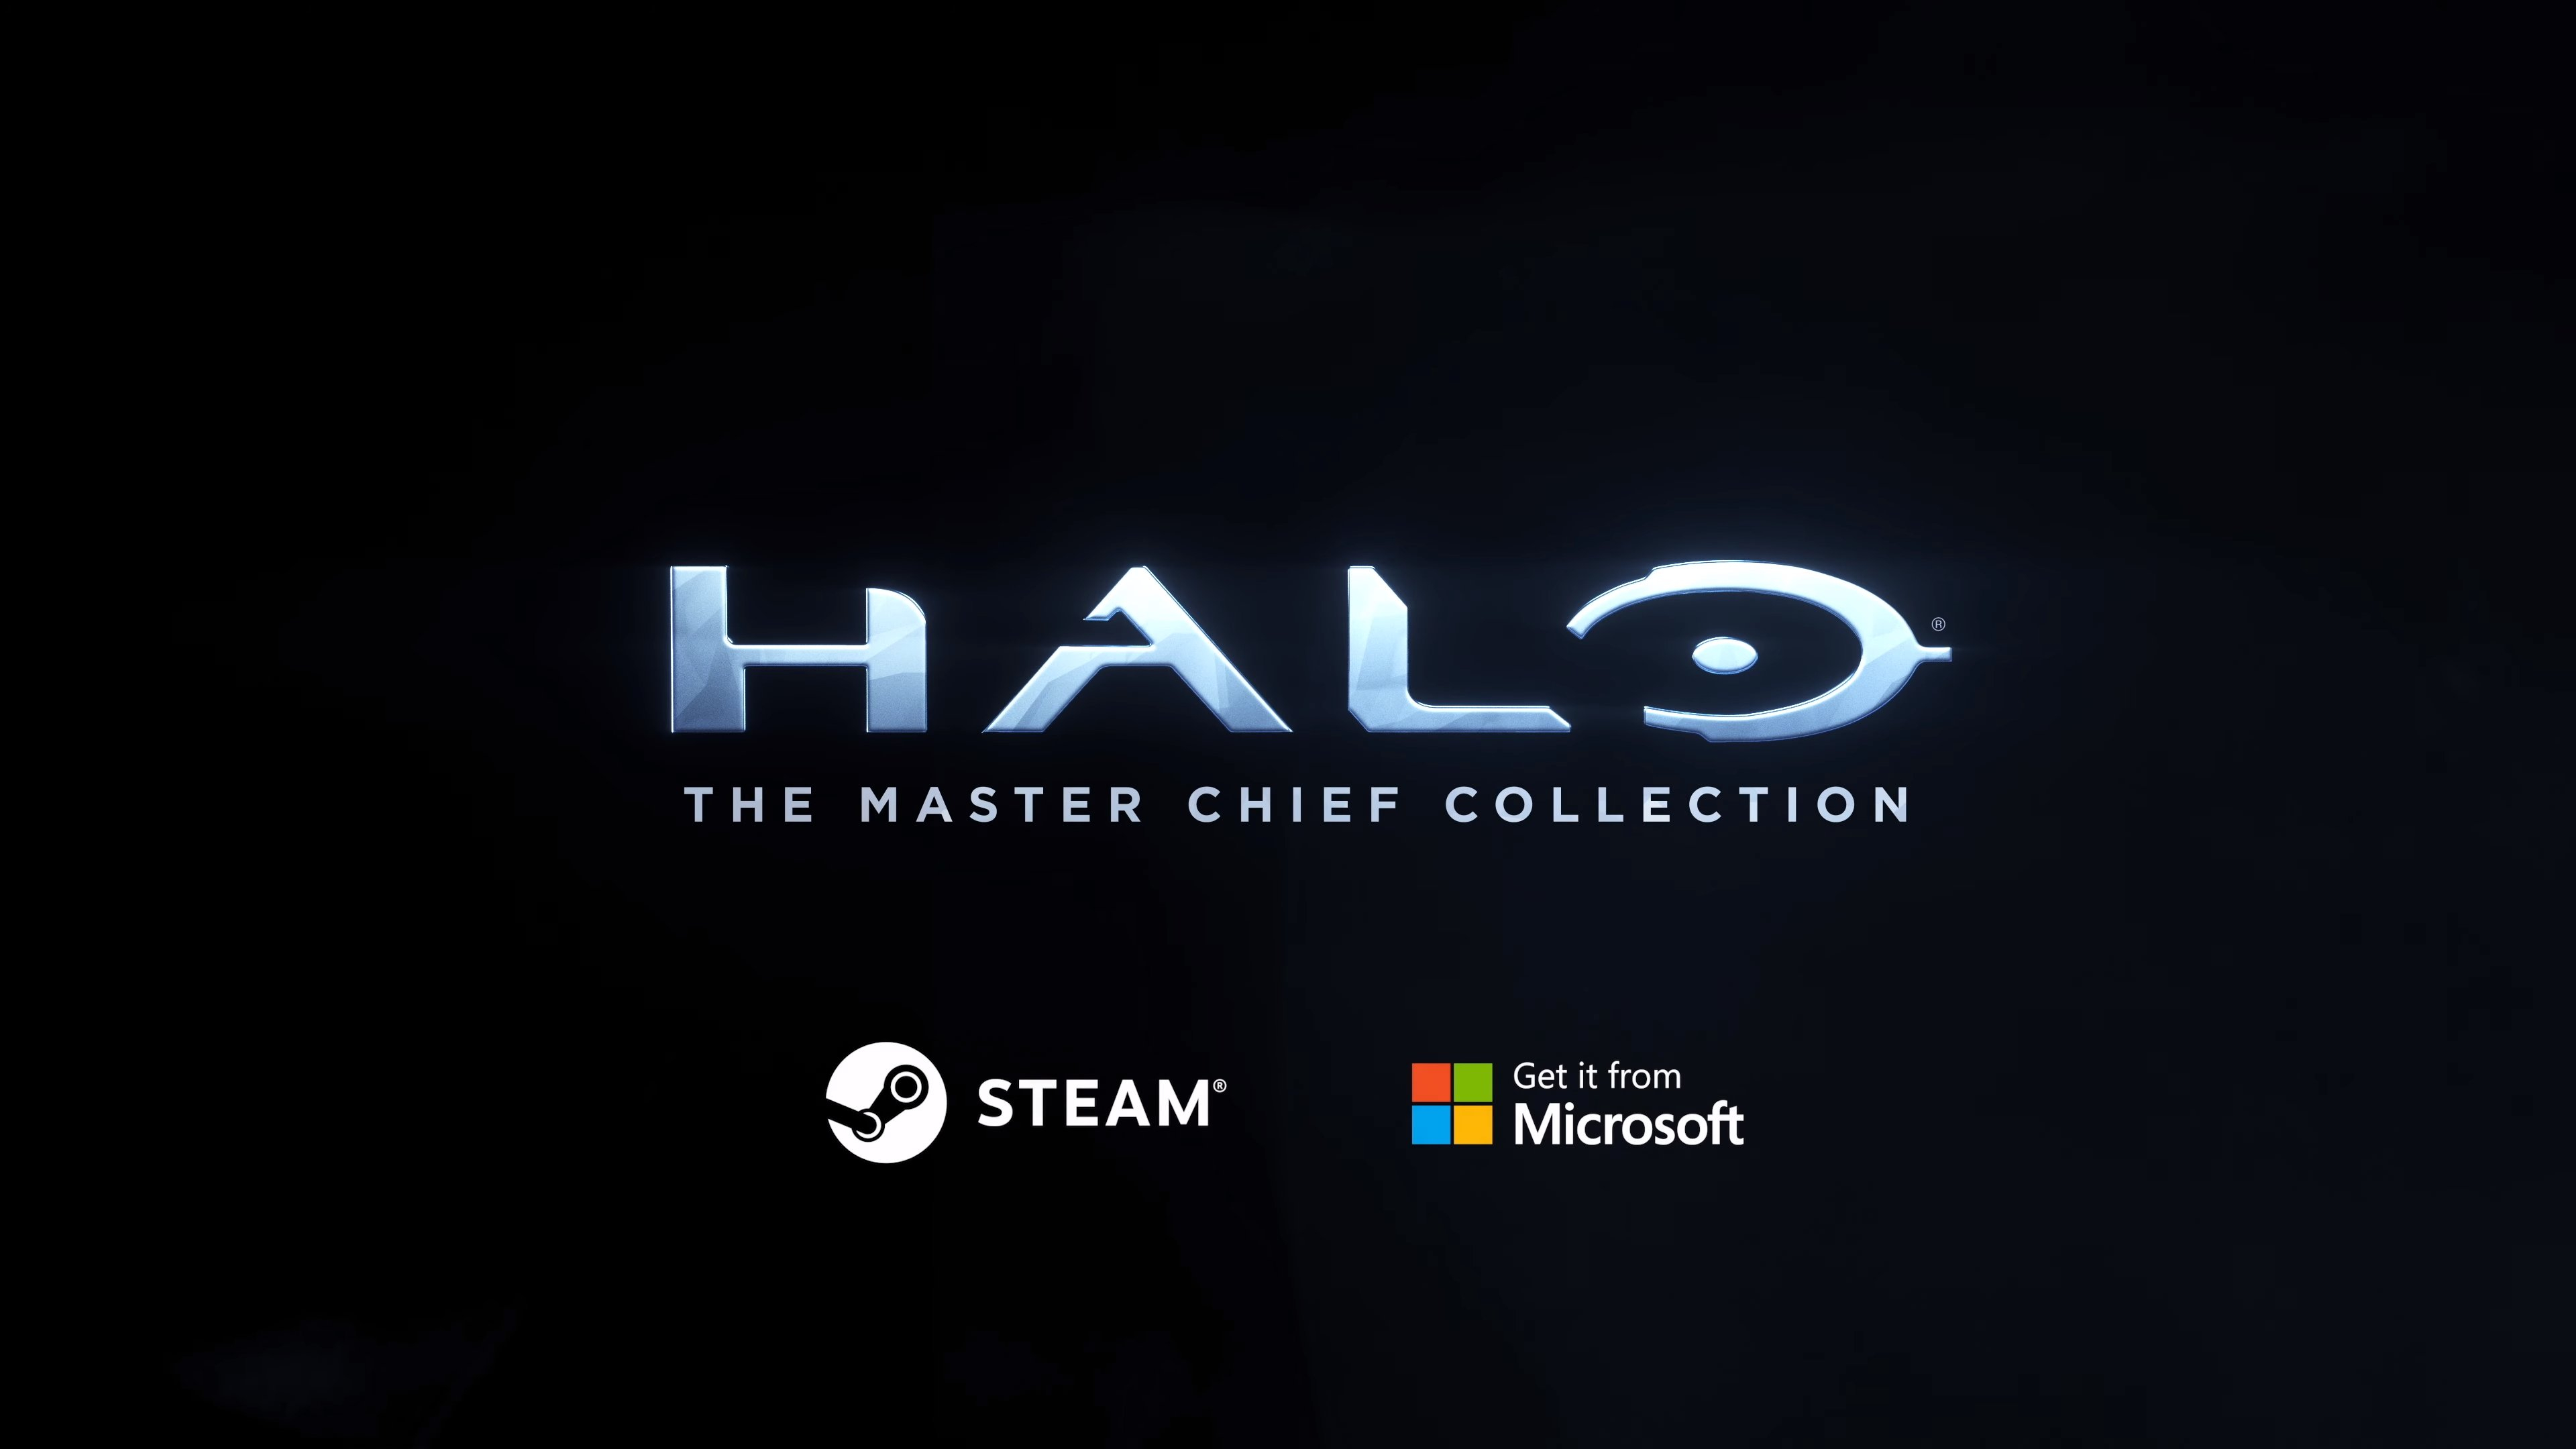 Halo: THe Master Chief Collection (finally) headed to PC Header Image